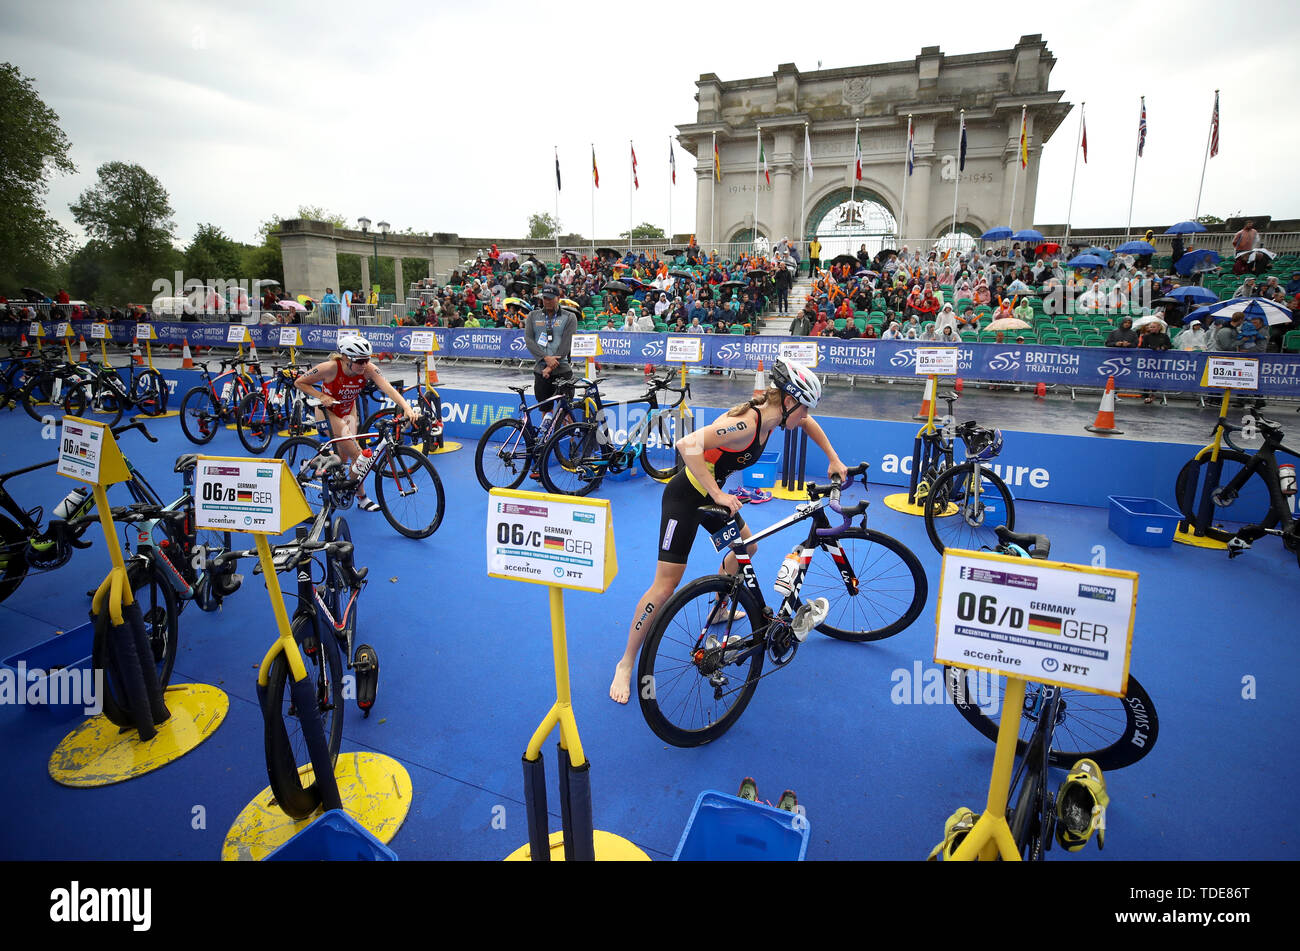 Germany's Caroline Pohle during the Accenture World Triathlon Mixed Relay at Nottingham Embankment. - Stock Image